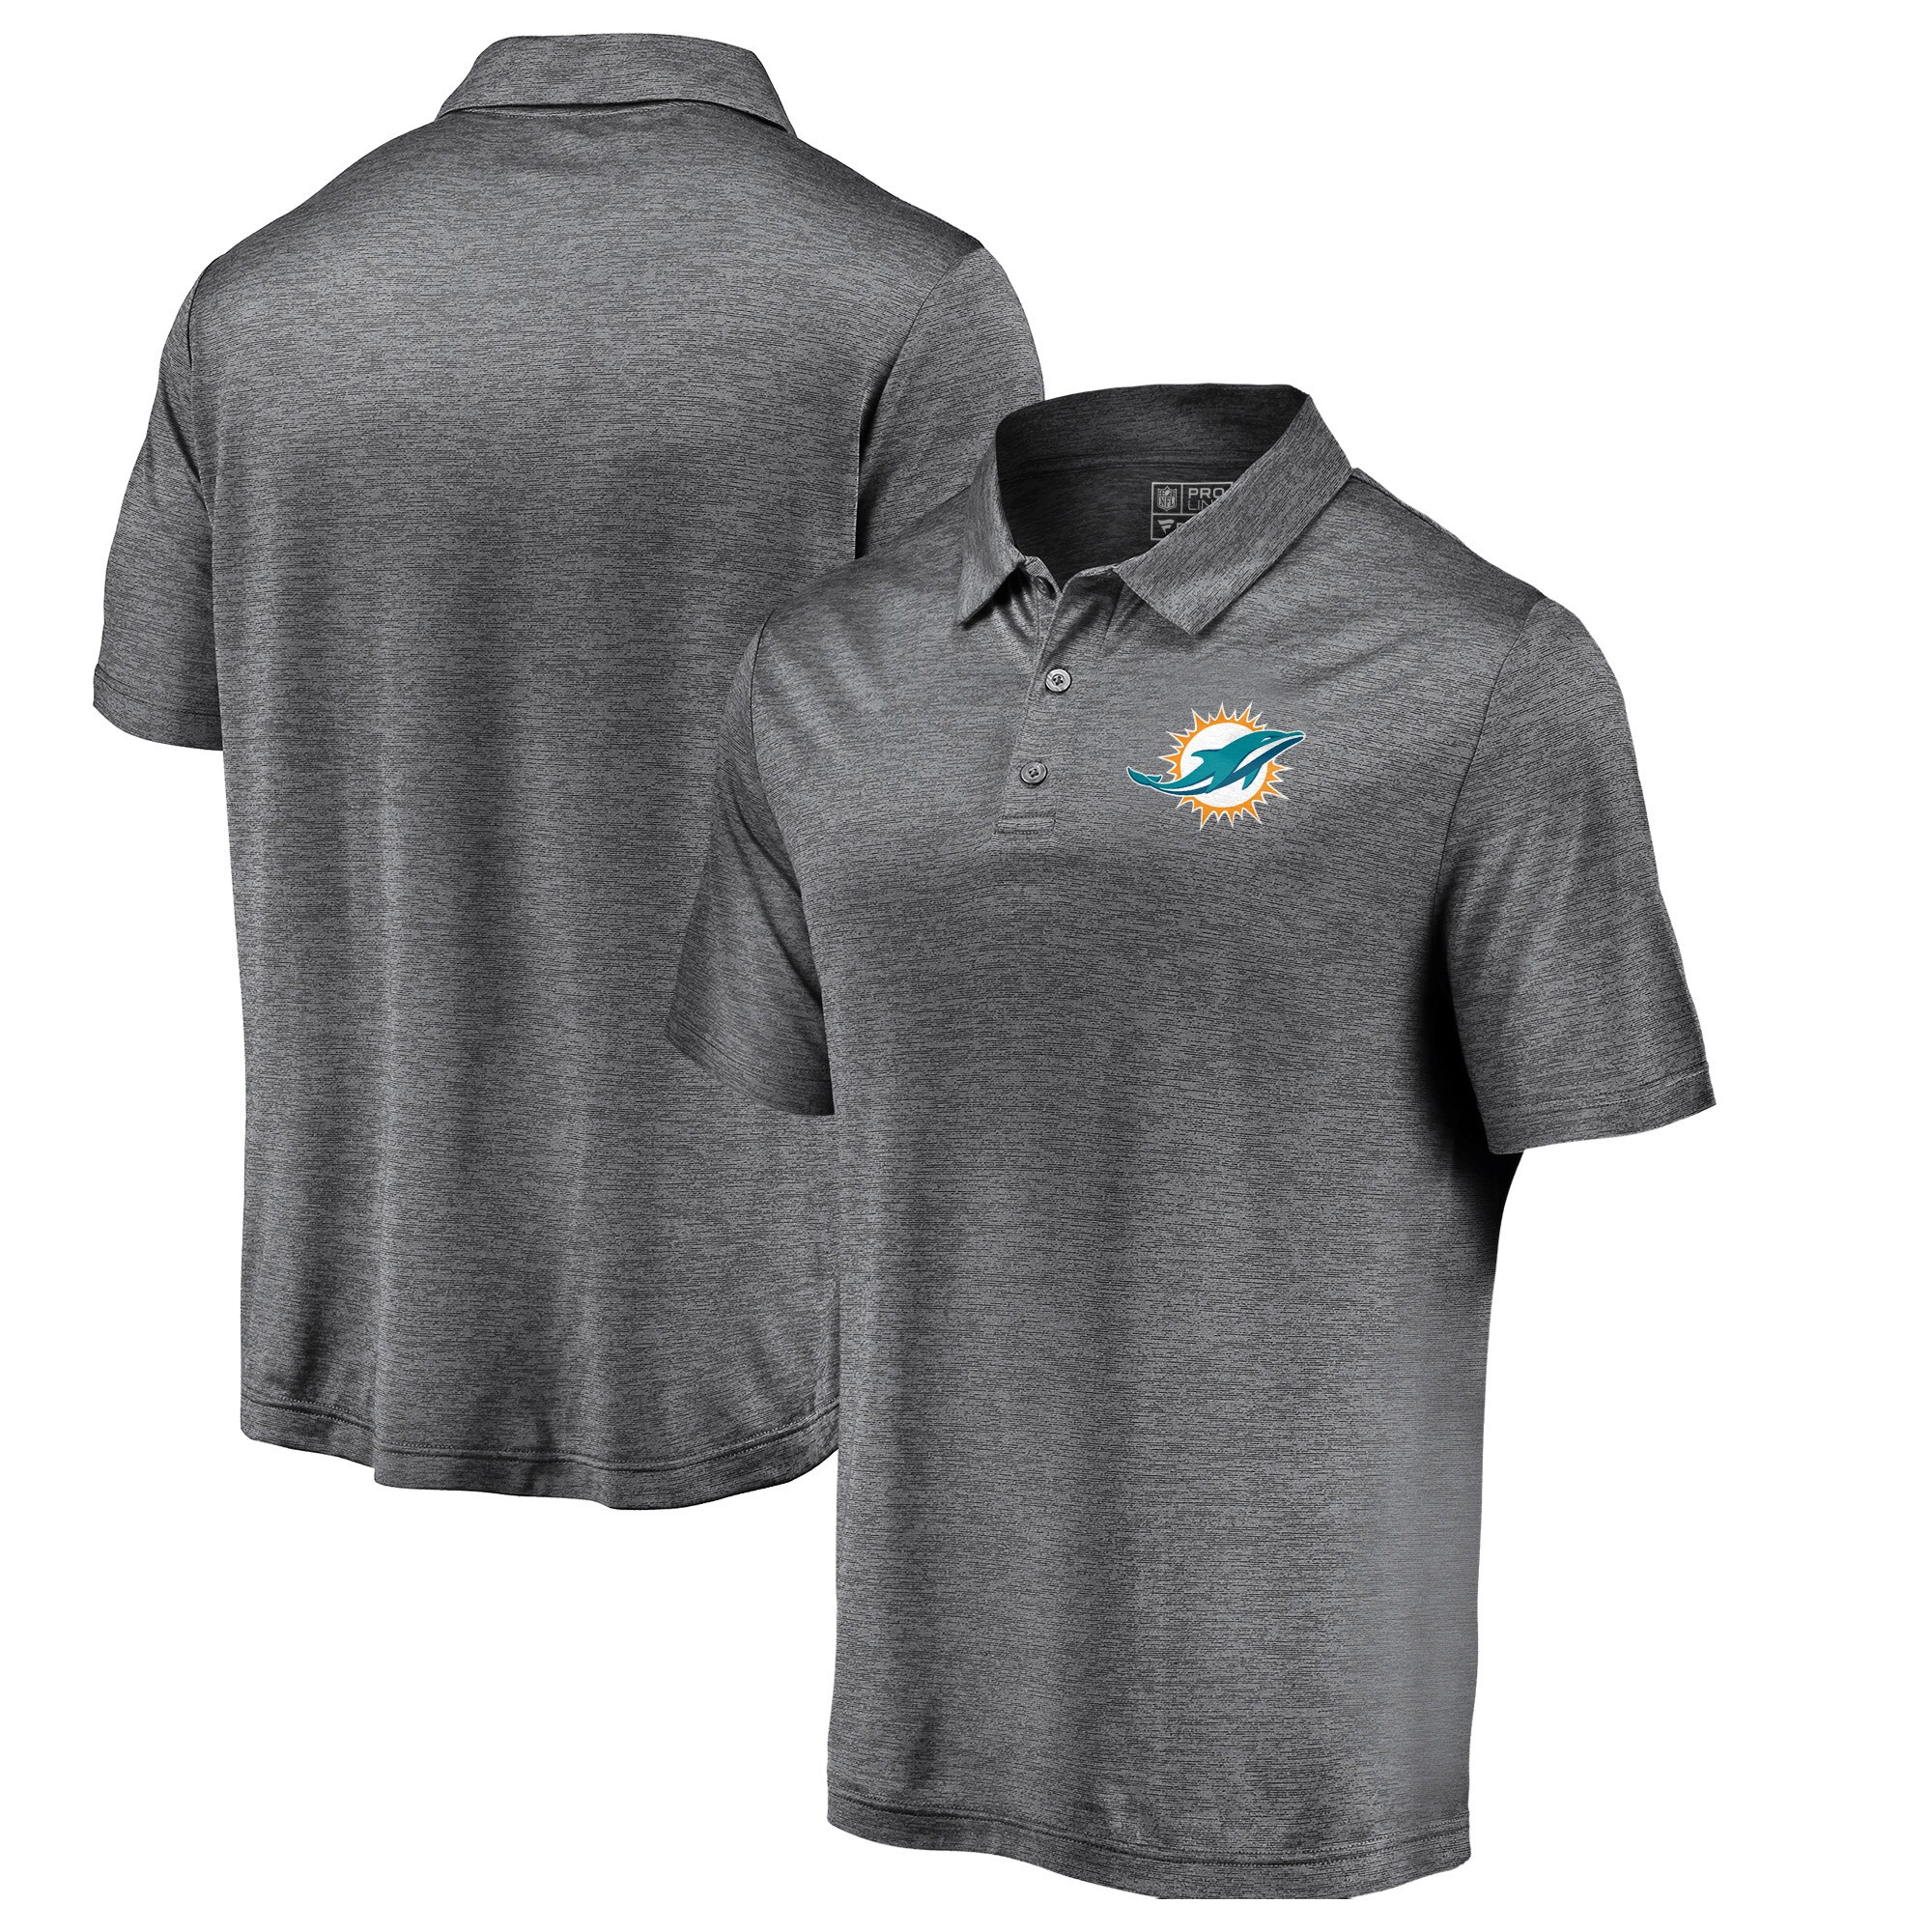 Miami Dolphins Majestic Iconic Positive Production Polo - Heathered Charcoal